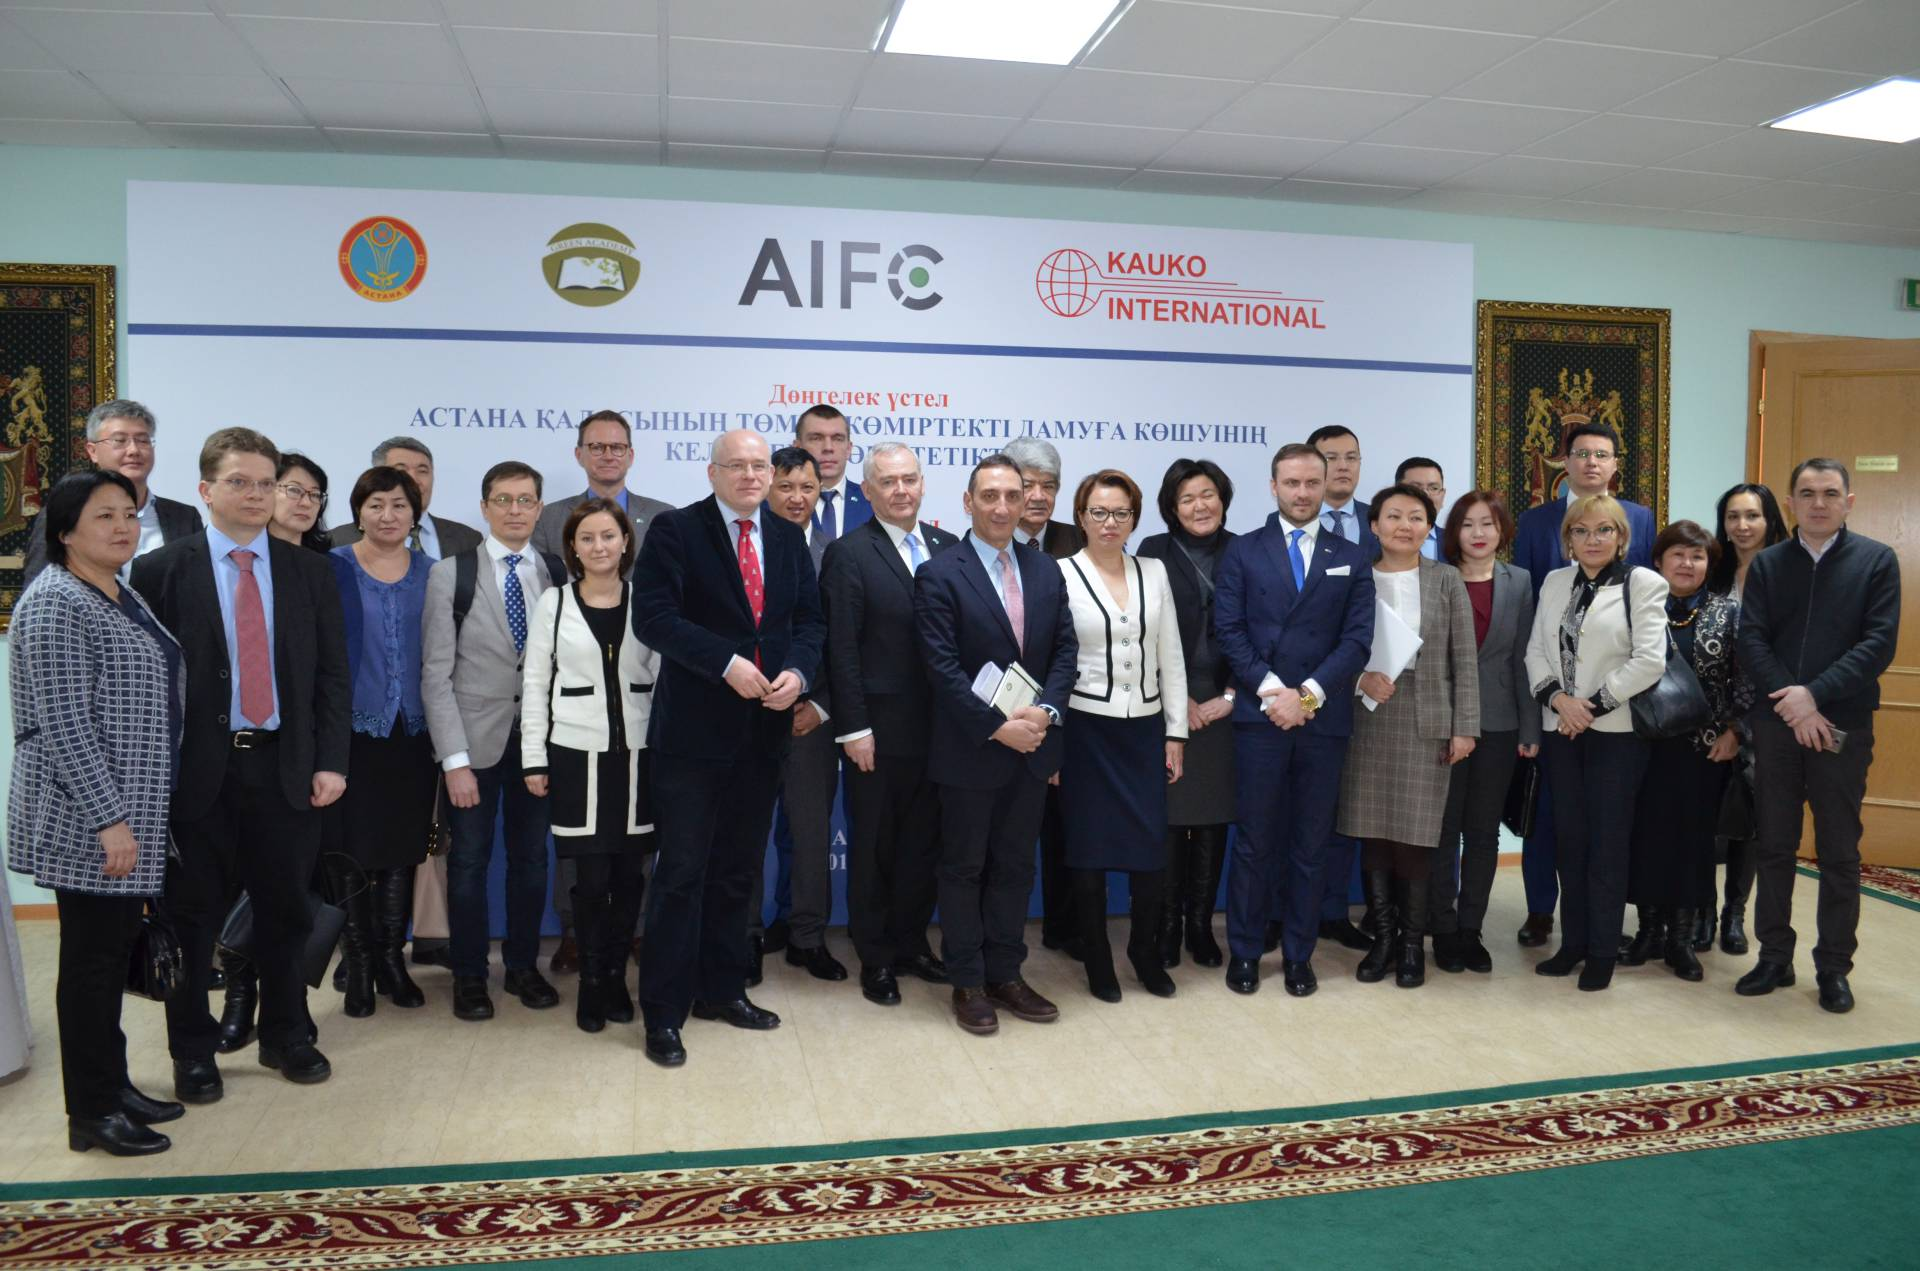 ASTANA STARTS WORK ON TRANSITION TO LOW-CARBON DEVELOPMENT